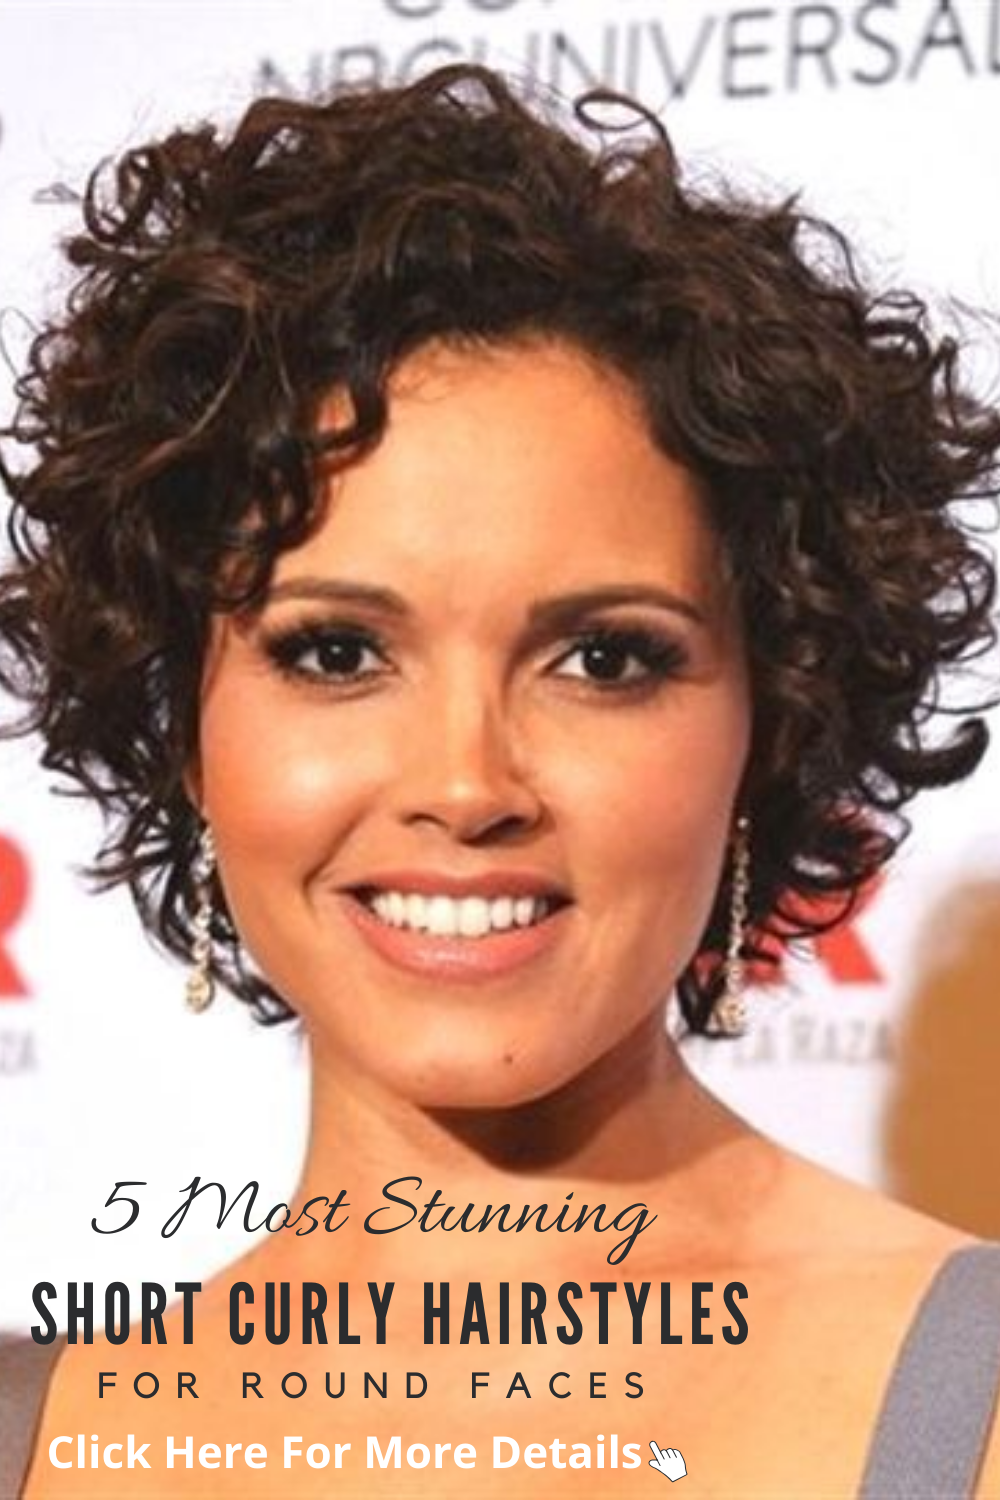 5 Most Stunning Short Curly Hairstyles For Round Faces In 2020 Curly Hair Styles Short Curly Haircuts Curly Hair Styles Naturally